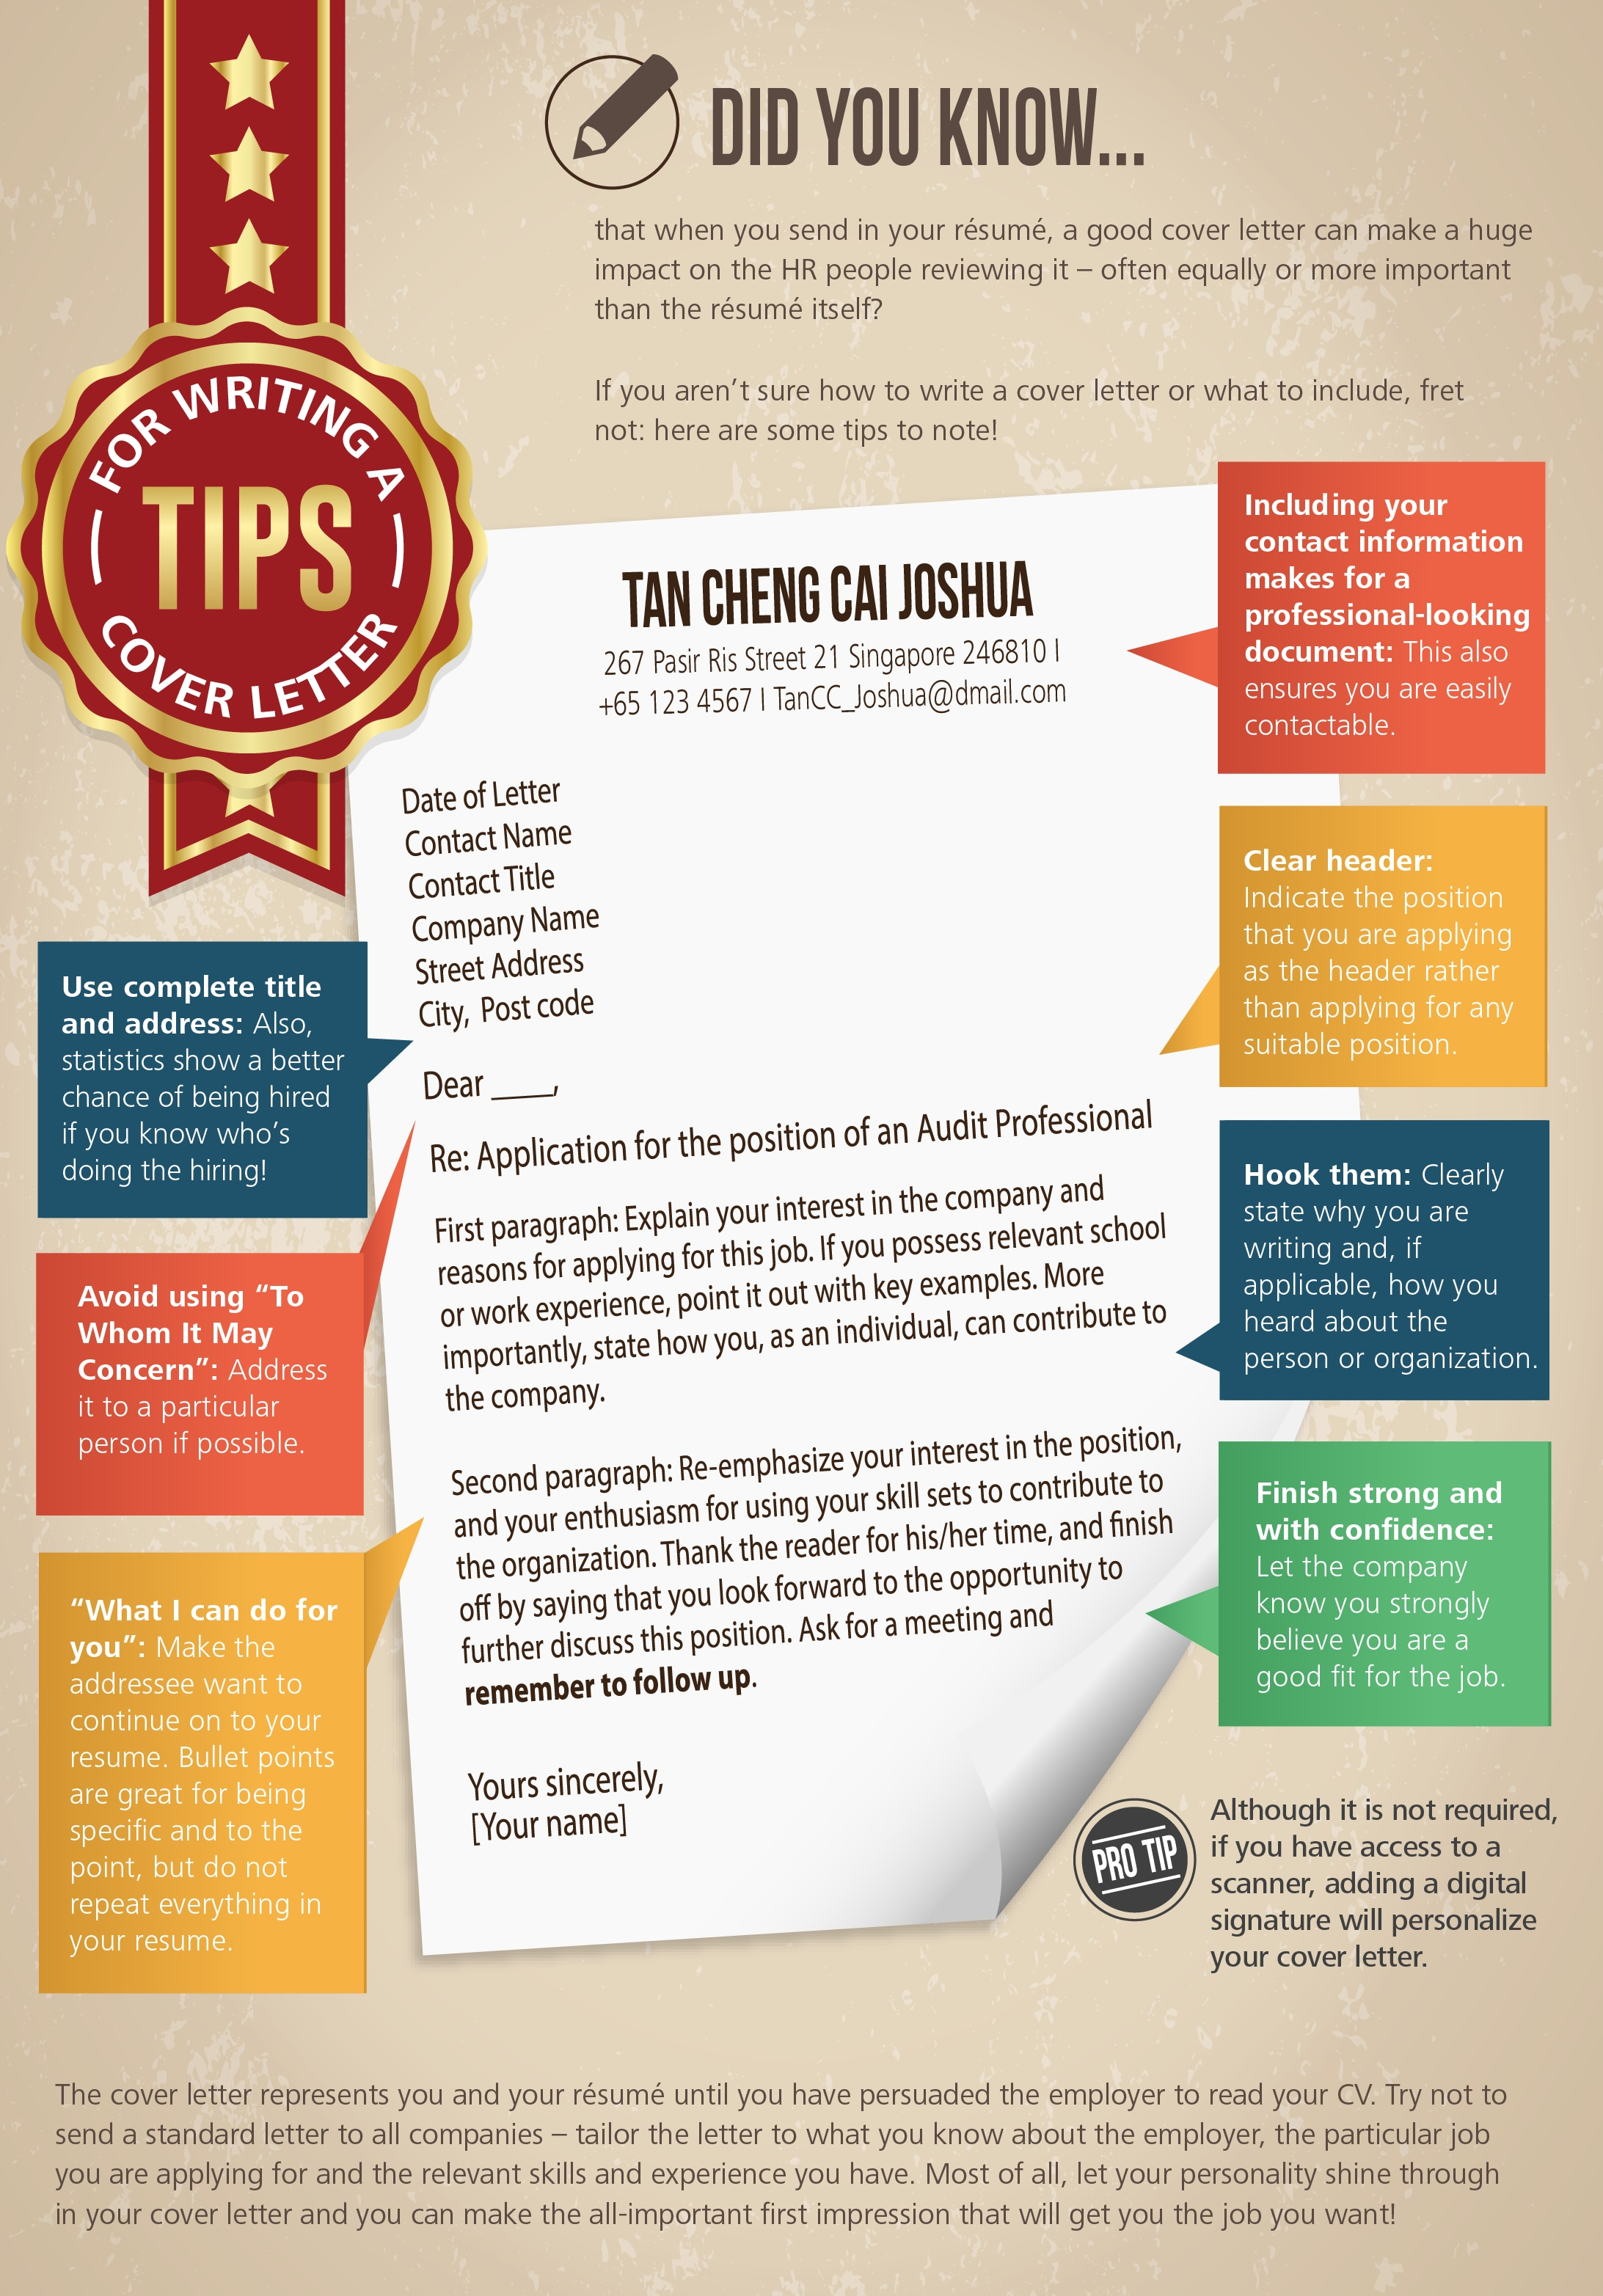 tips for cover letters 25 best ideas about cover letter example on pinterest employment cover letter - Tips For Cover Letter Writing